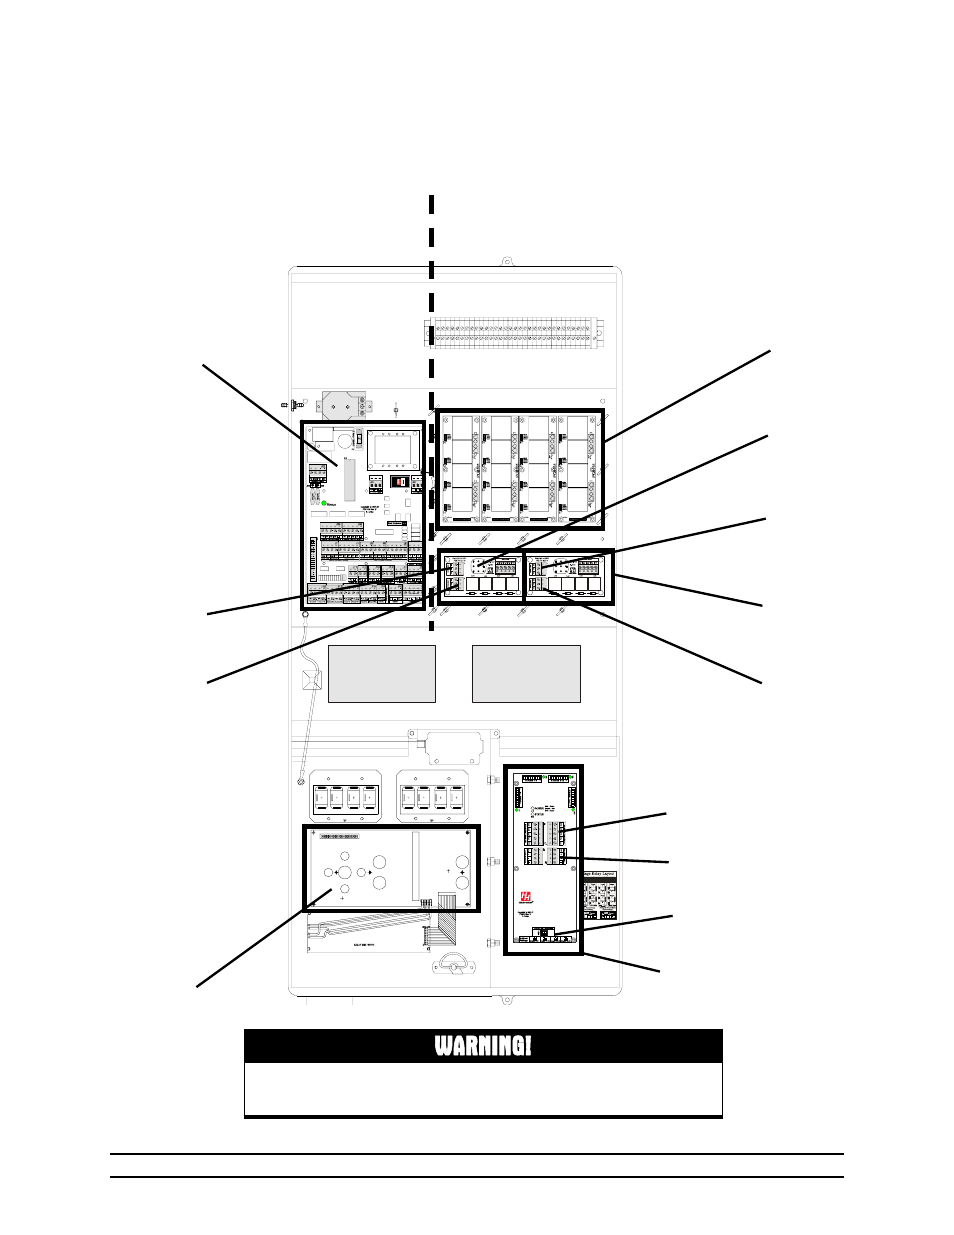 wiring diagram for cnt 35 26 relay